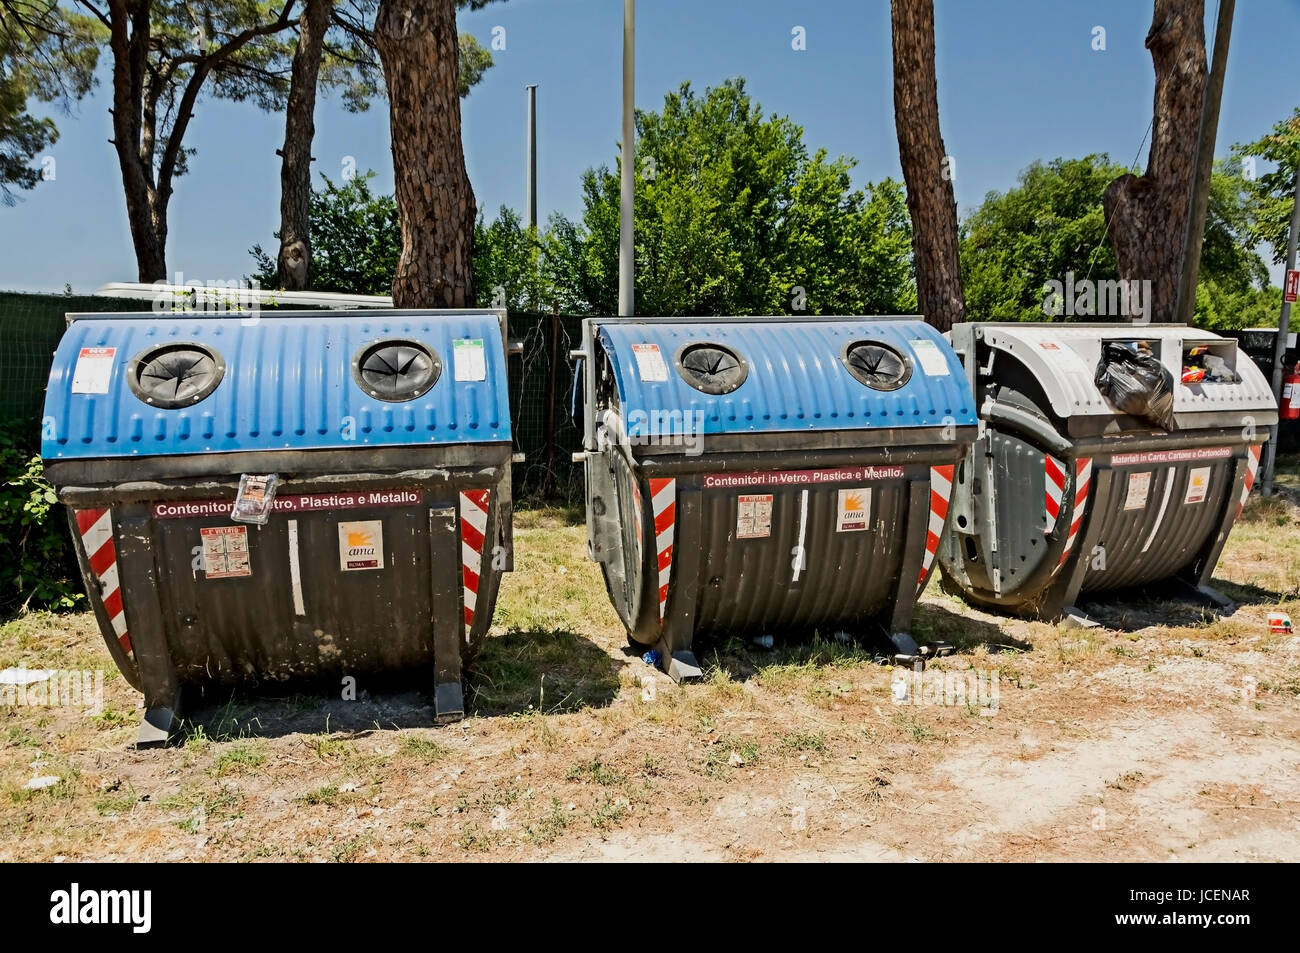 Commerical size recycling bins in Italy. - Stock Image